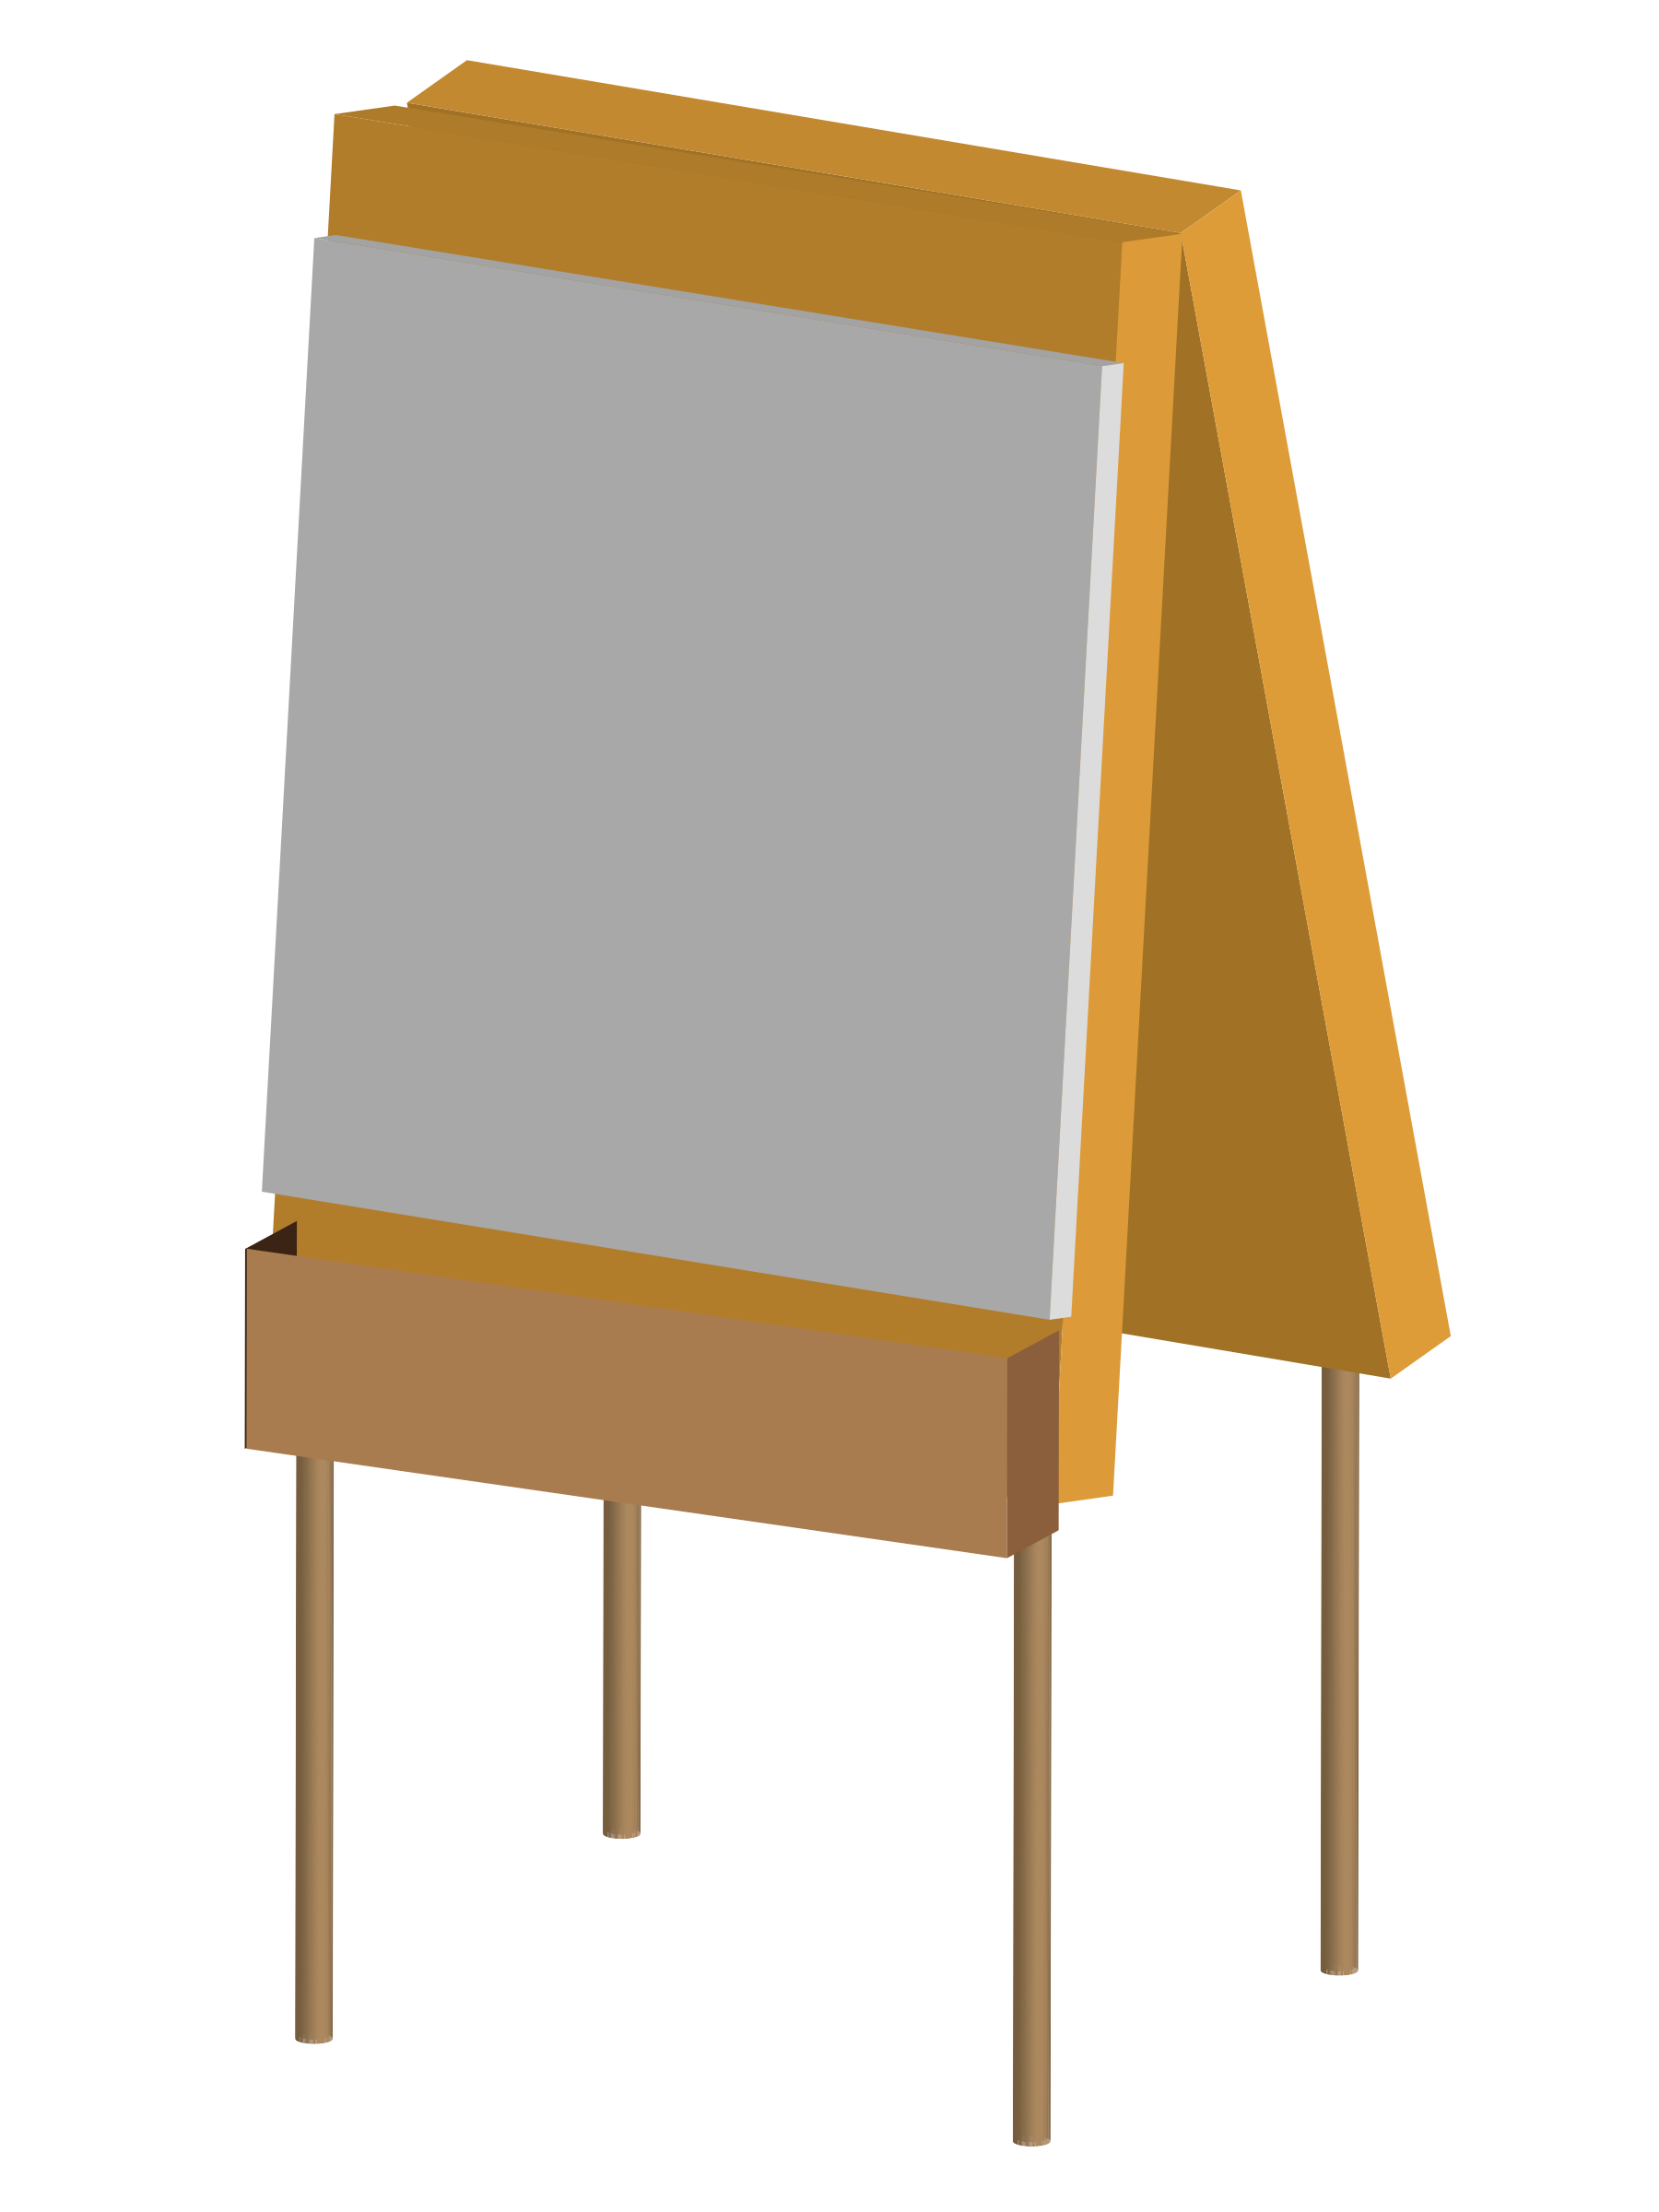 An easel by jhnri4